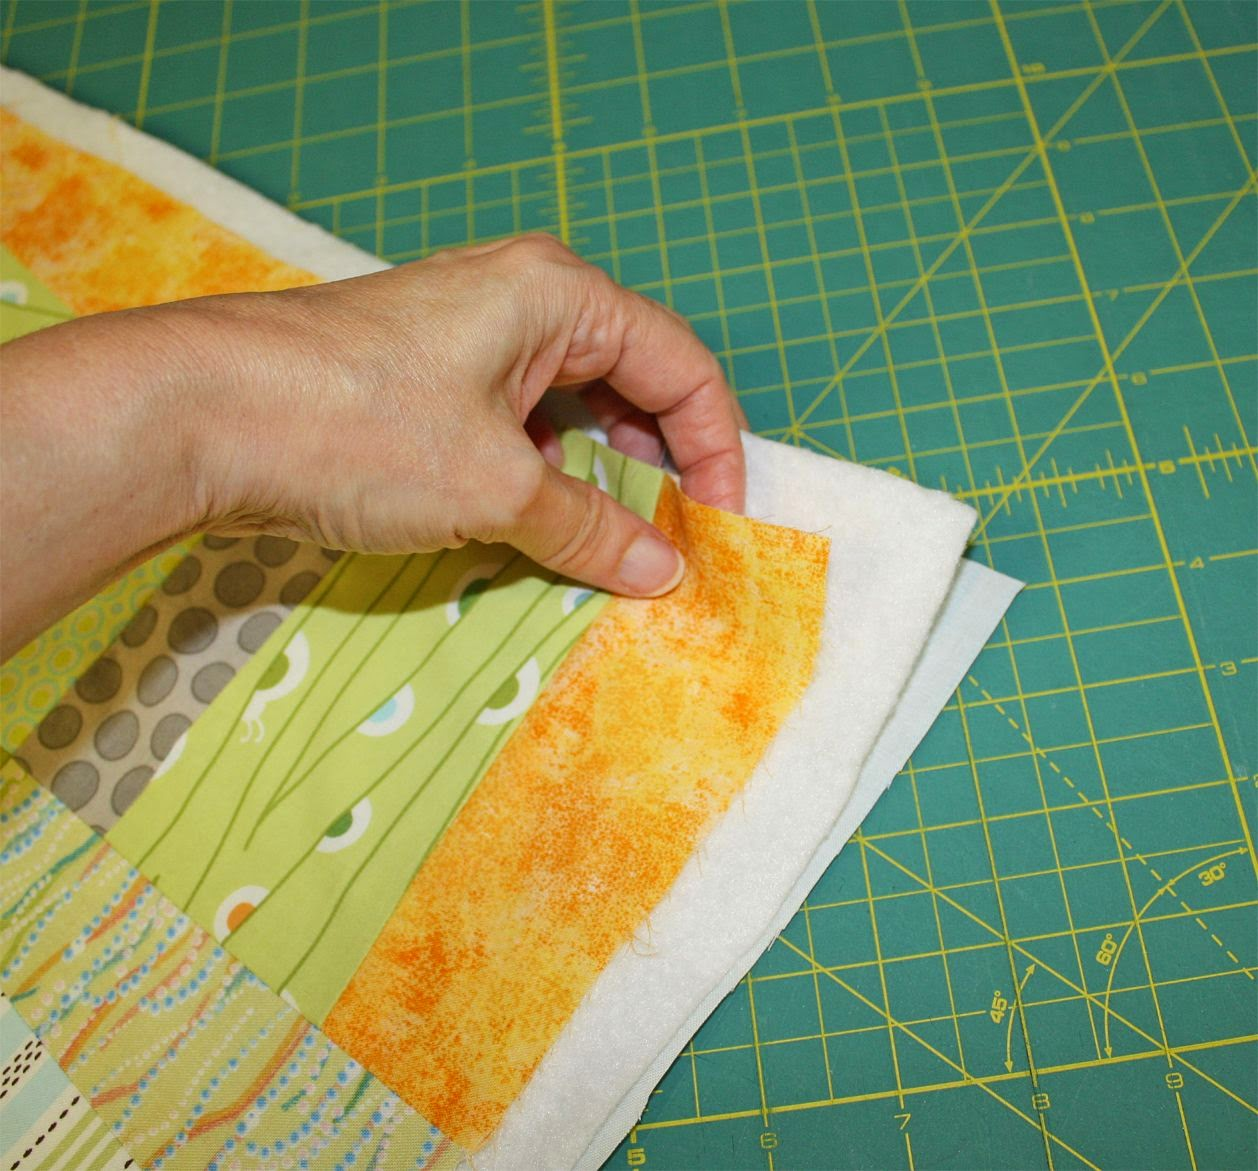 battings piecing quilters nqc to quilting national video batting how piece circle together c quilt